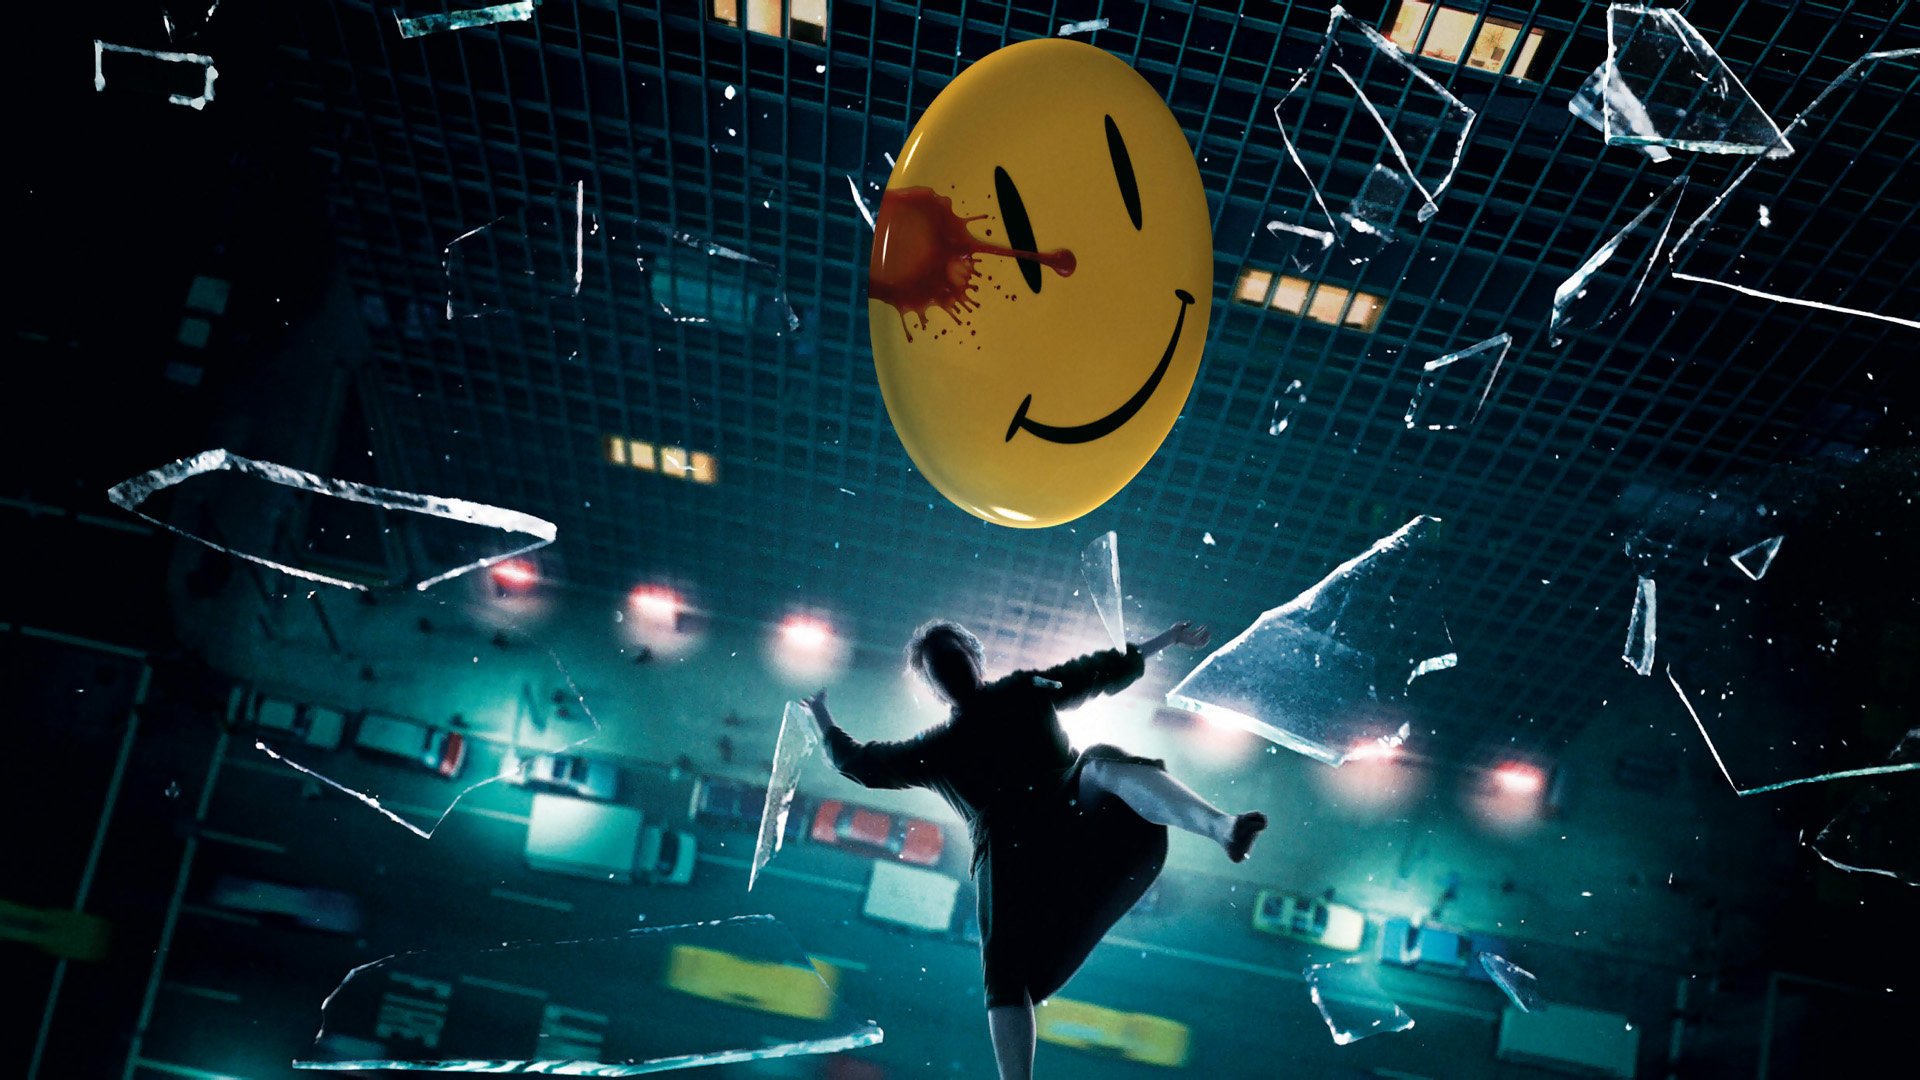 Watchmen Movie Scene 4168936 1920x1080 All For Desktop